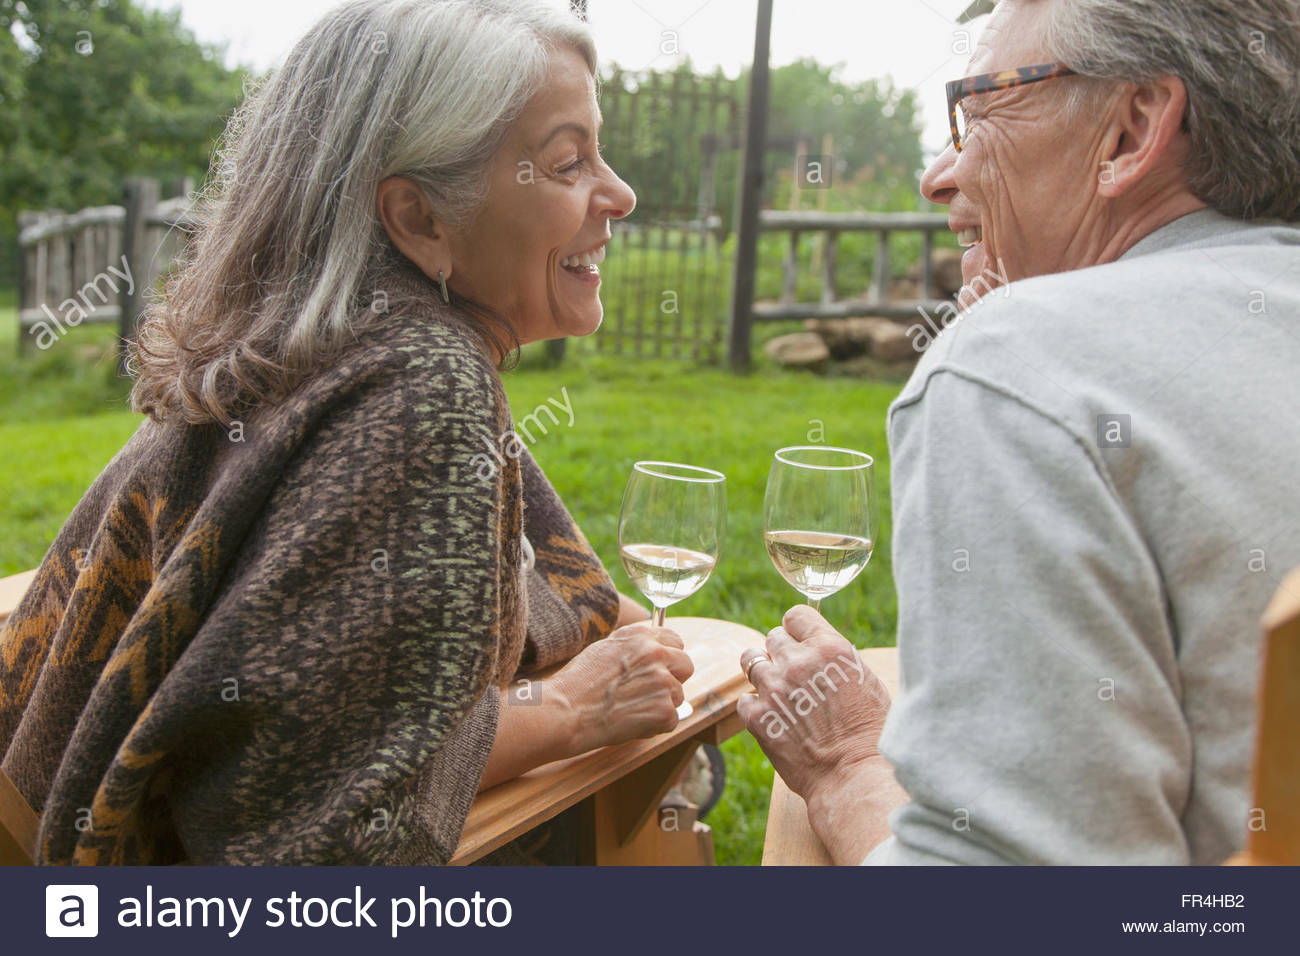 senior couple looking at each other while drinking wine - Stock Image